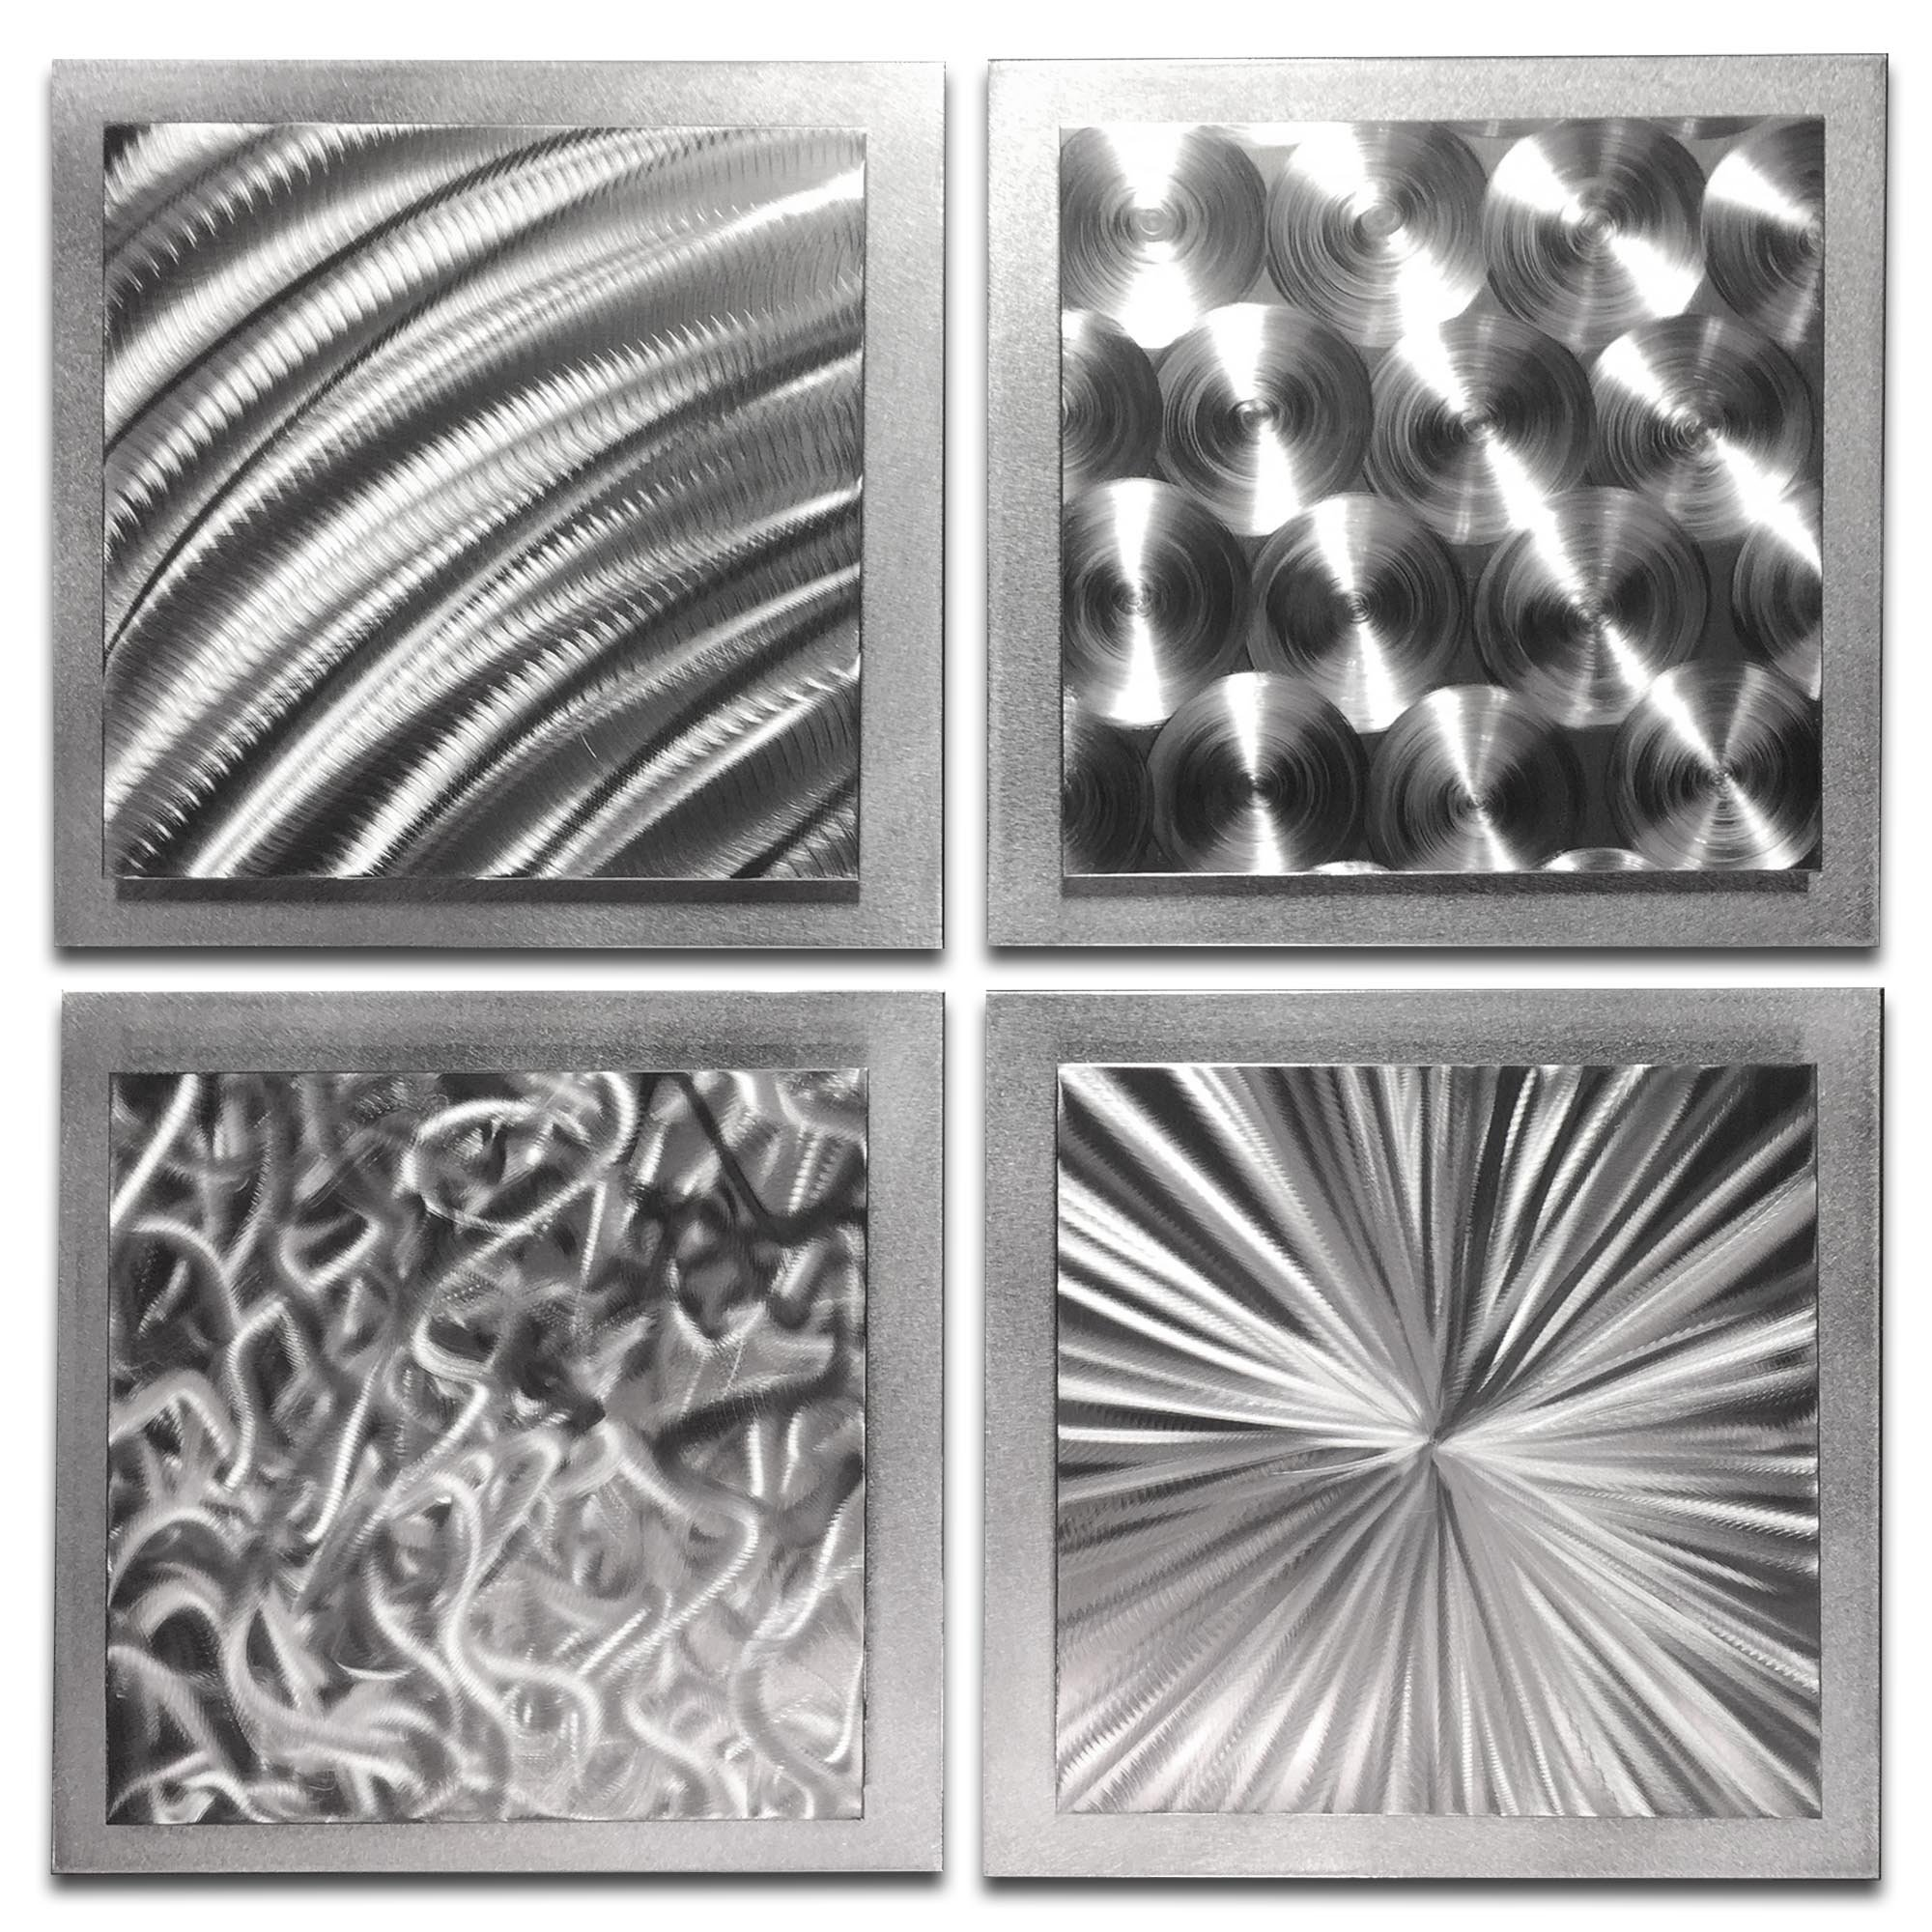 Abstract Metal Art 'Silver Seasons' by Nate Halley - Original Modern Wall Decor 3D Accent Sculpture on Natural Aluminum